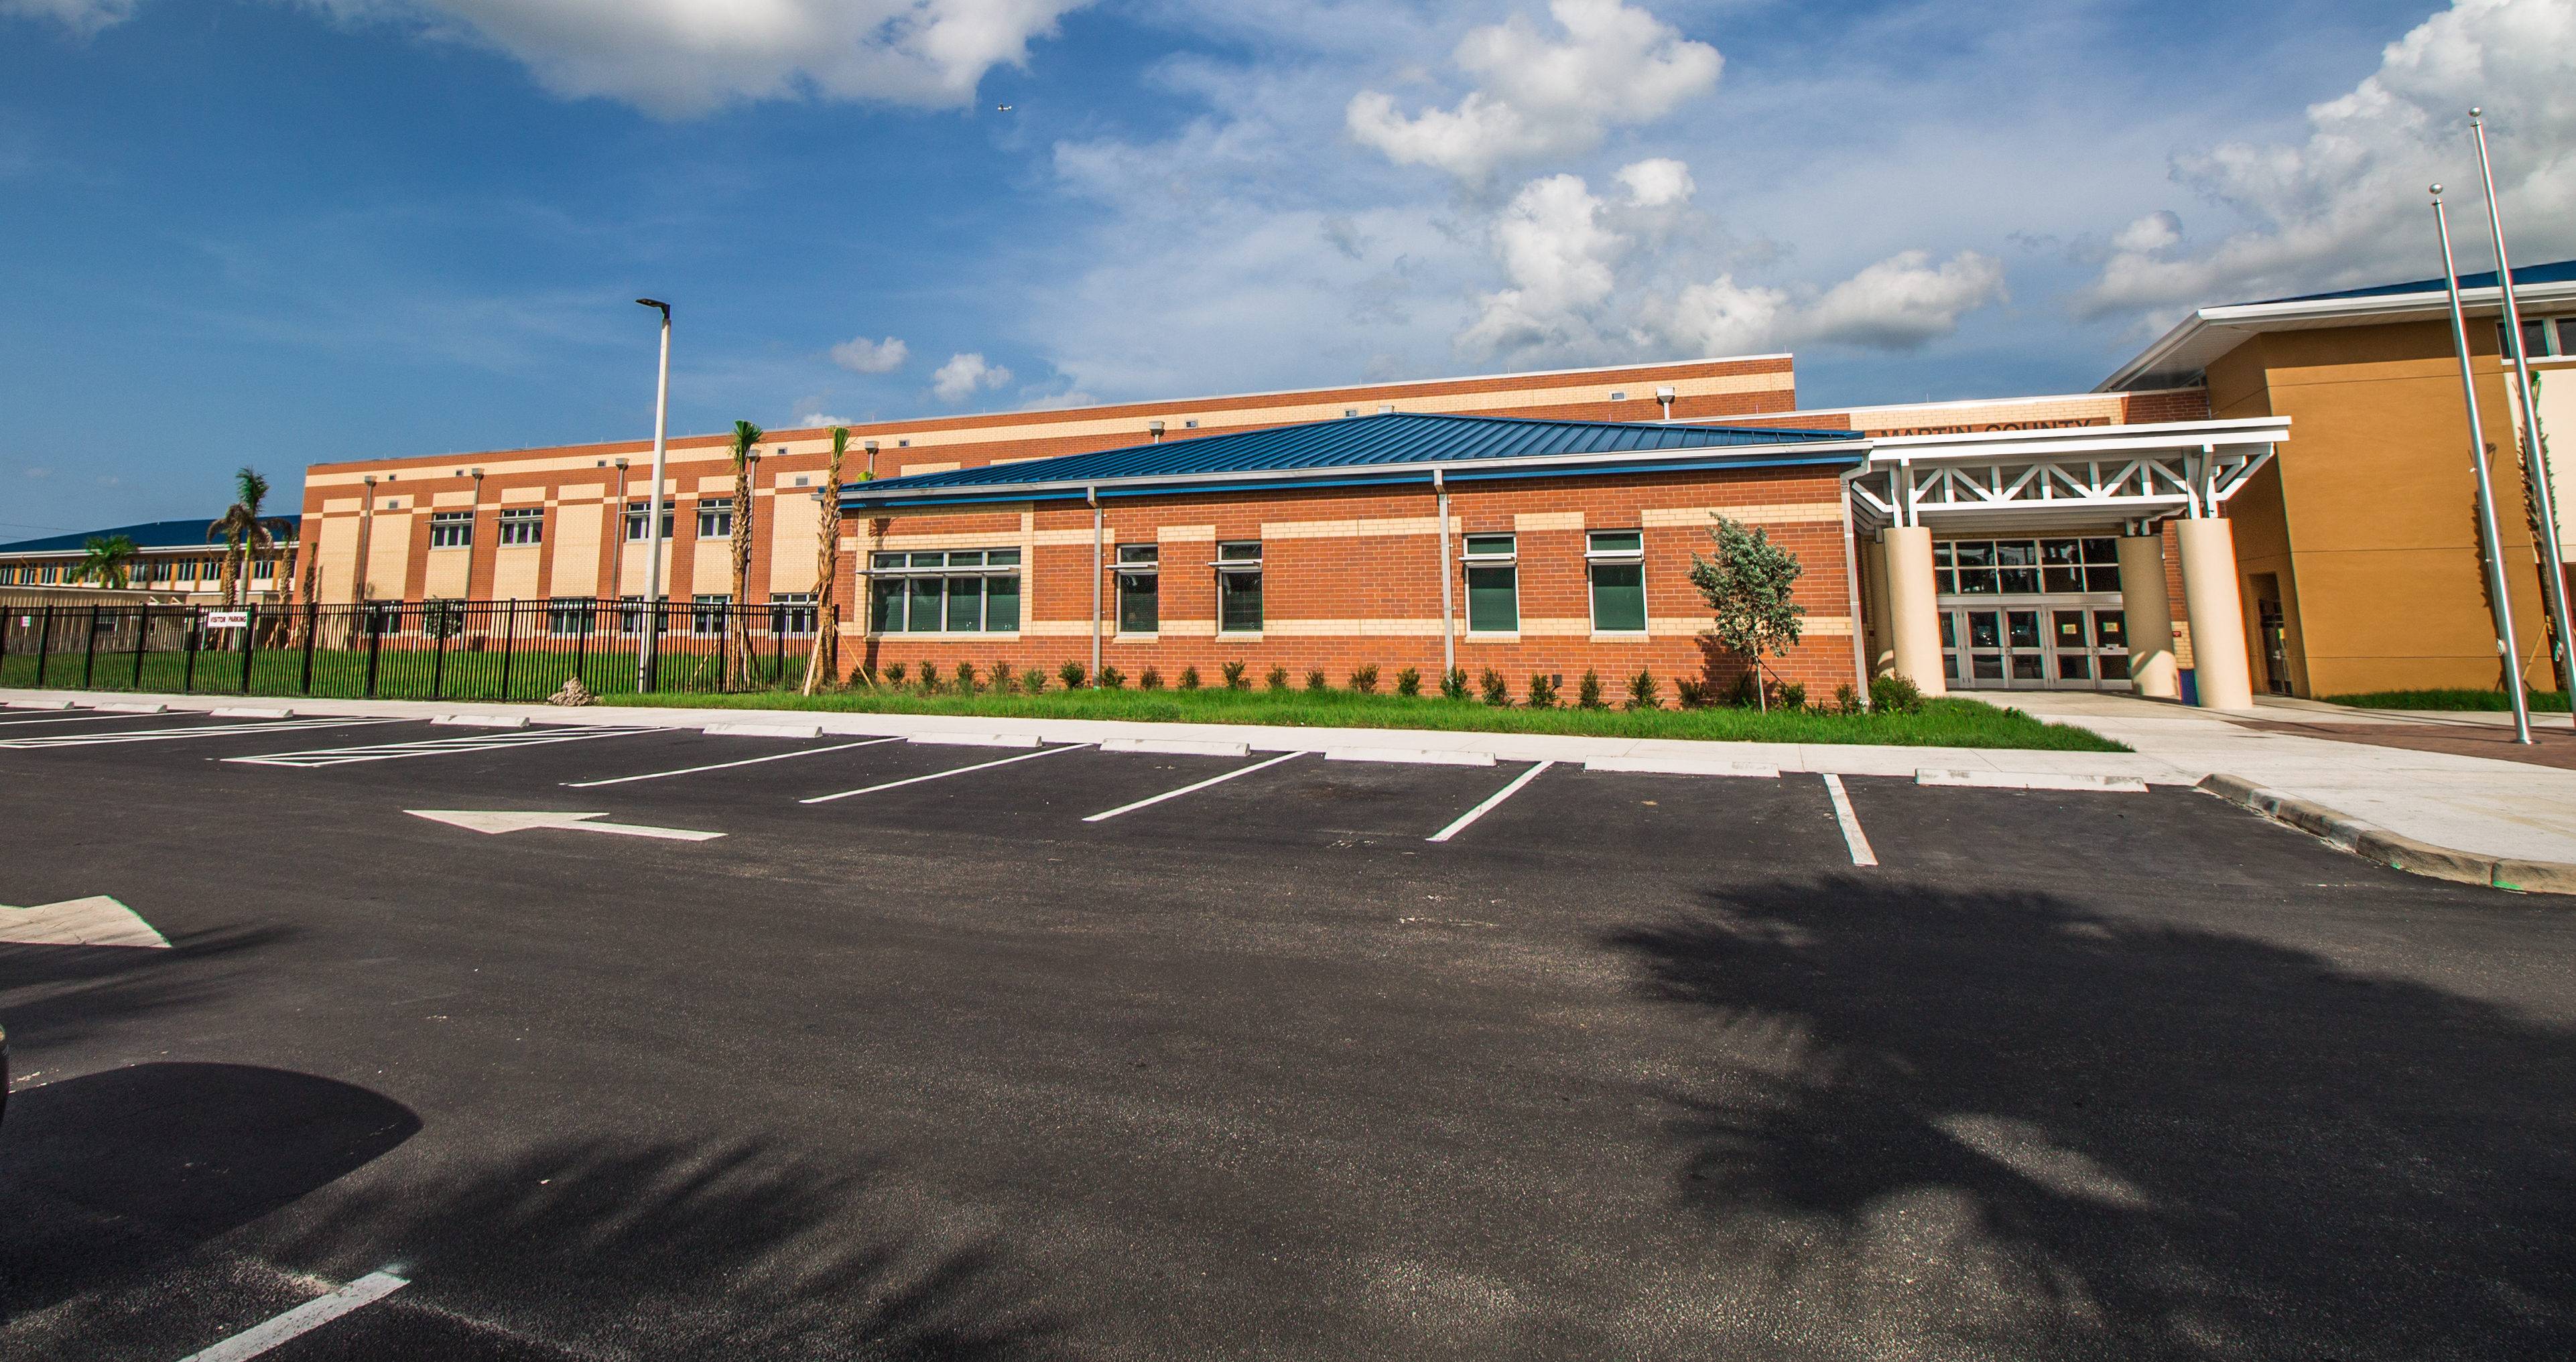 As an electrical contractor in Palm City, we have contributed decisively to many electrical construction projects across the Southeastern USA, including the Martin County High School in Florida.